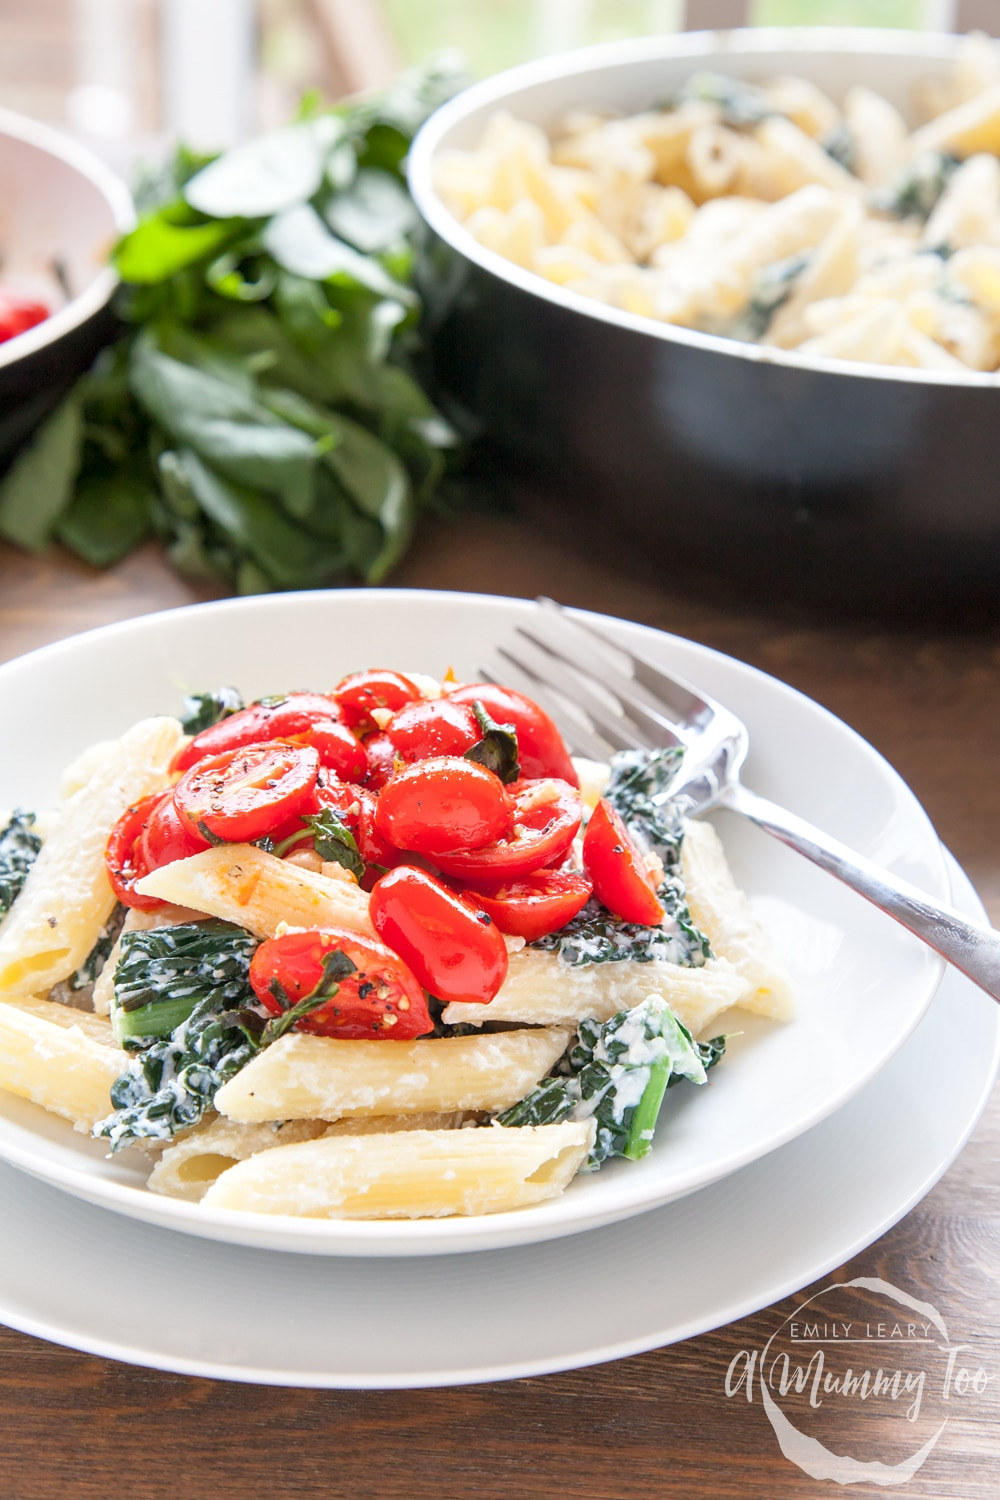 The cavolo nero penne with basil fried tomatoes is served, topped with more basil fried tomatoes